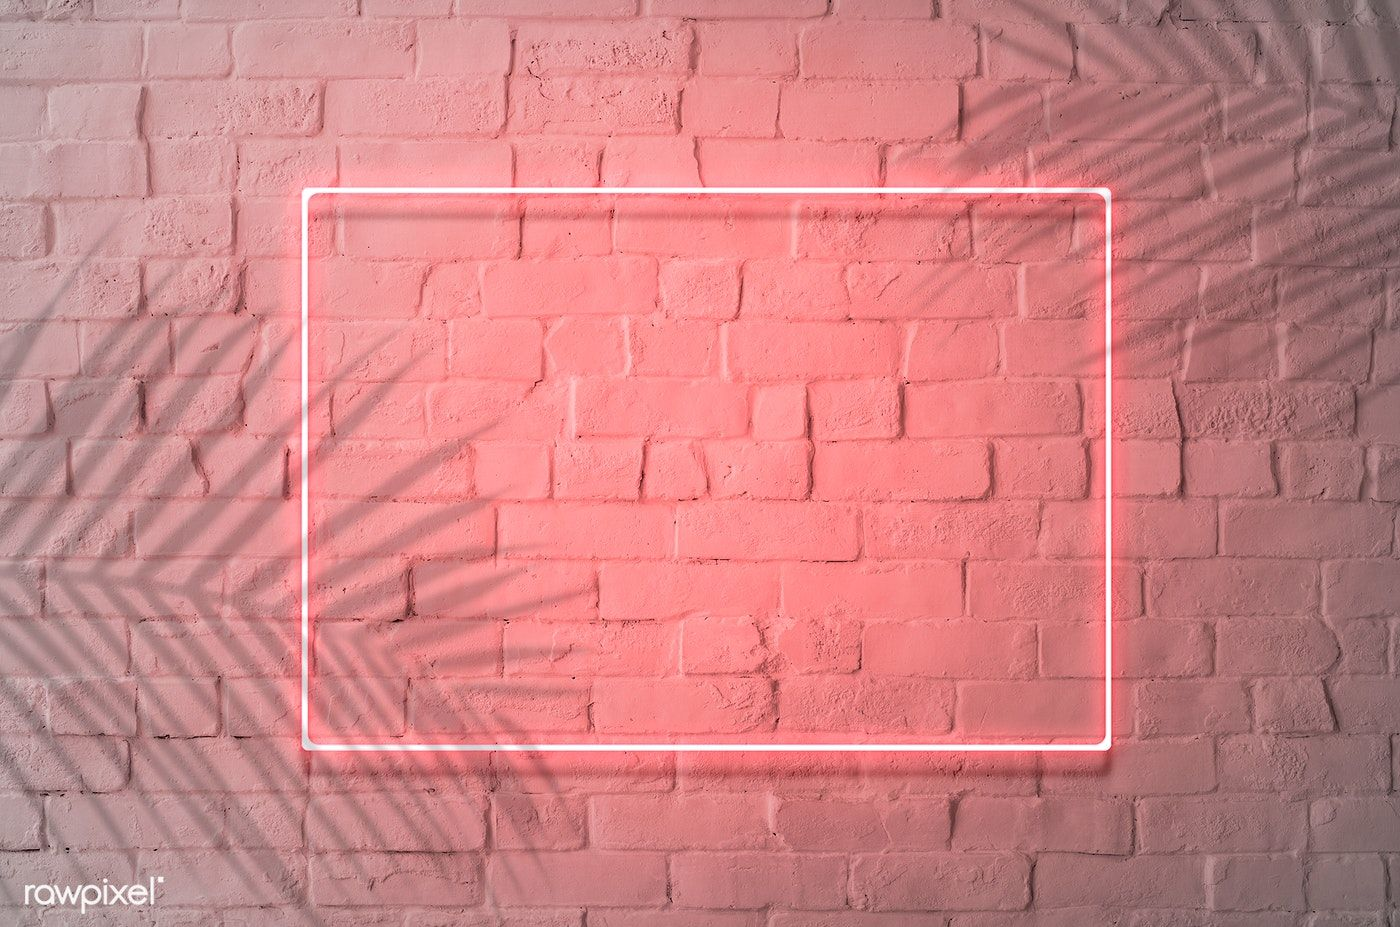 Download Premium Psd Of Neon Red Frame On A Brick Wall 894323 In 2020 Neon Signs Neon Wallpaper Wallpaper Notebook